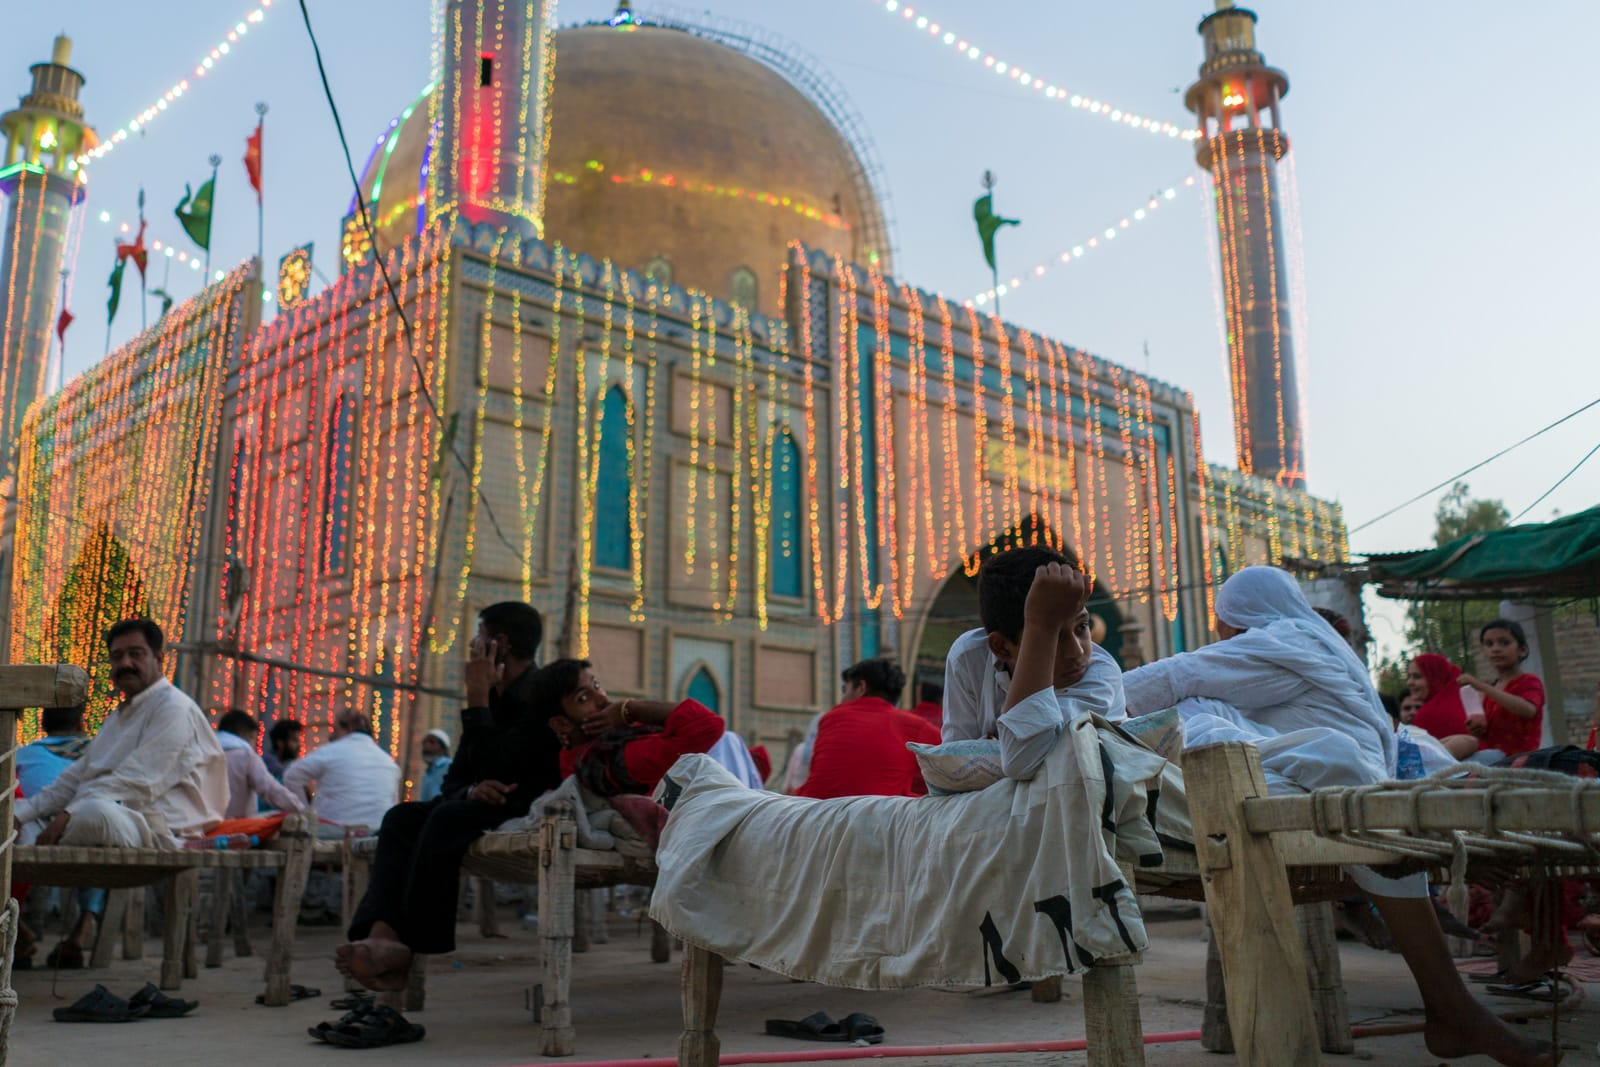 The Urs of Lal Shahbaz Qalandar in Sehwan, Pakistan - Boy lounging on charpoy bed near shrine - Lost With Purpose travel blog